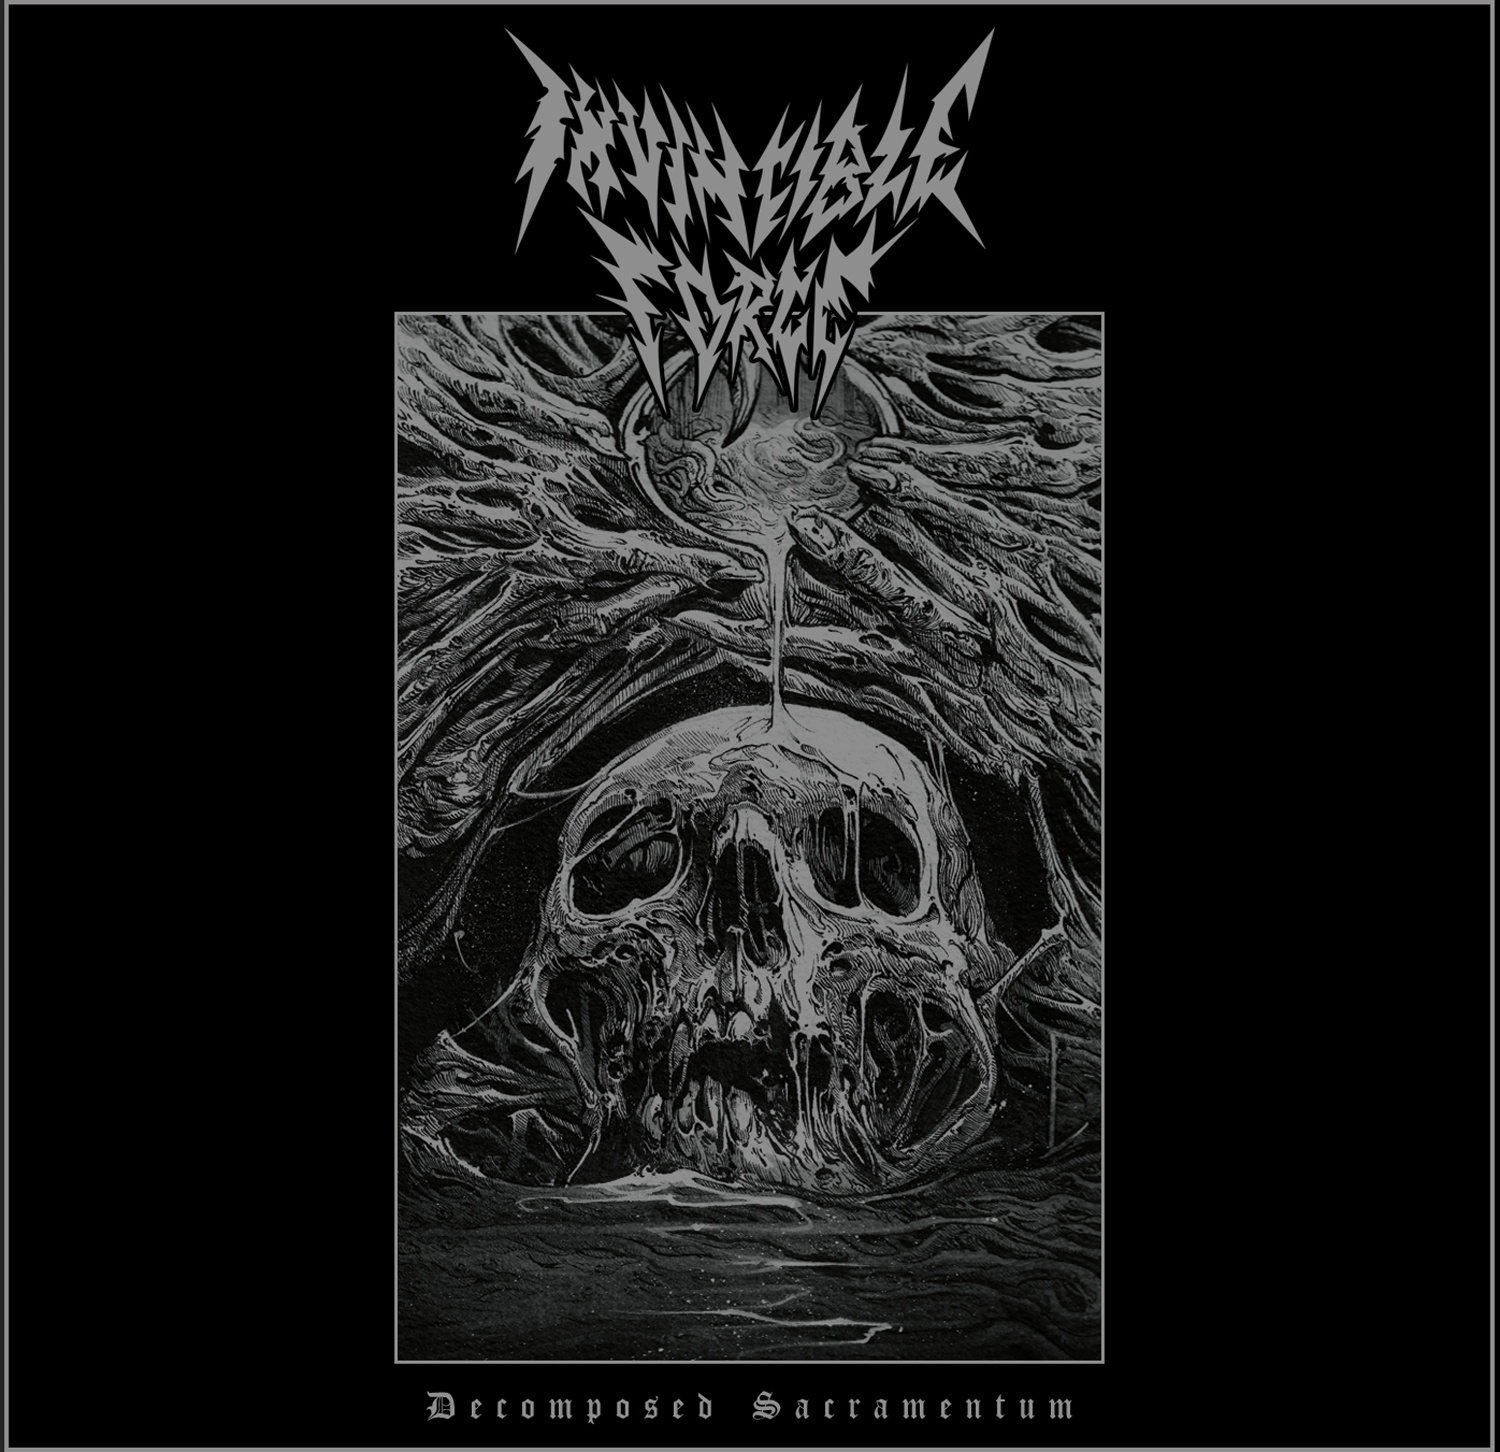 Invincible Force - Decomposed Sacramentum (2020)